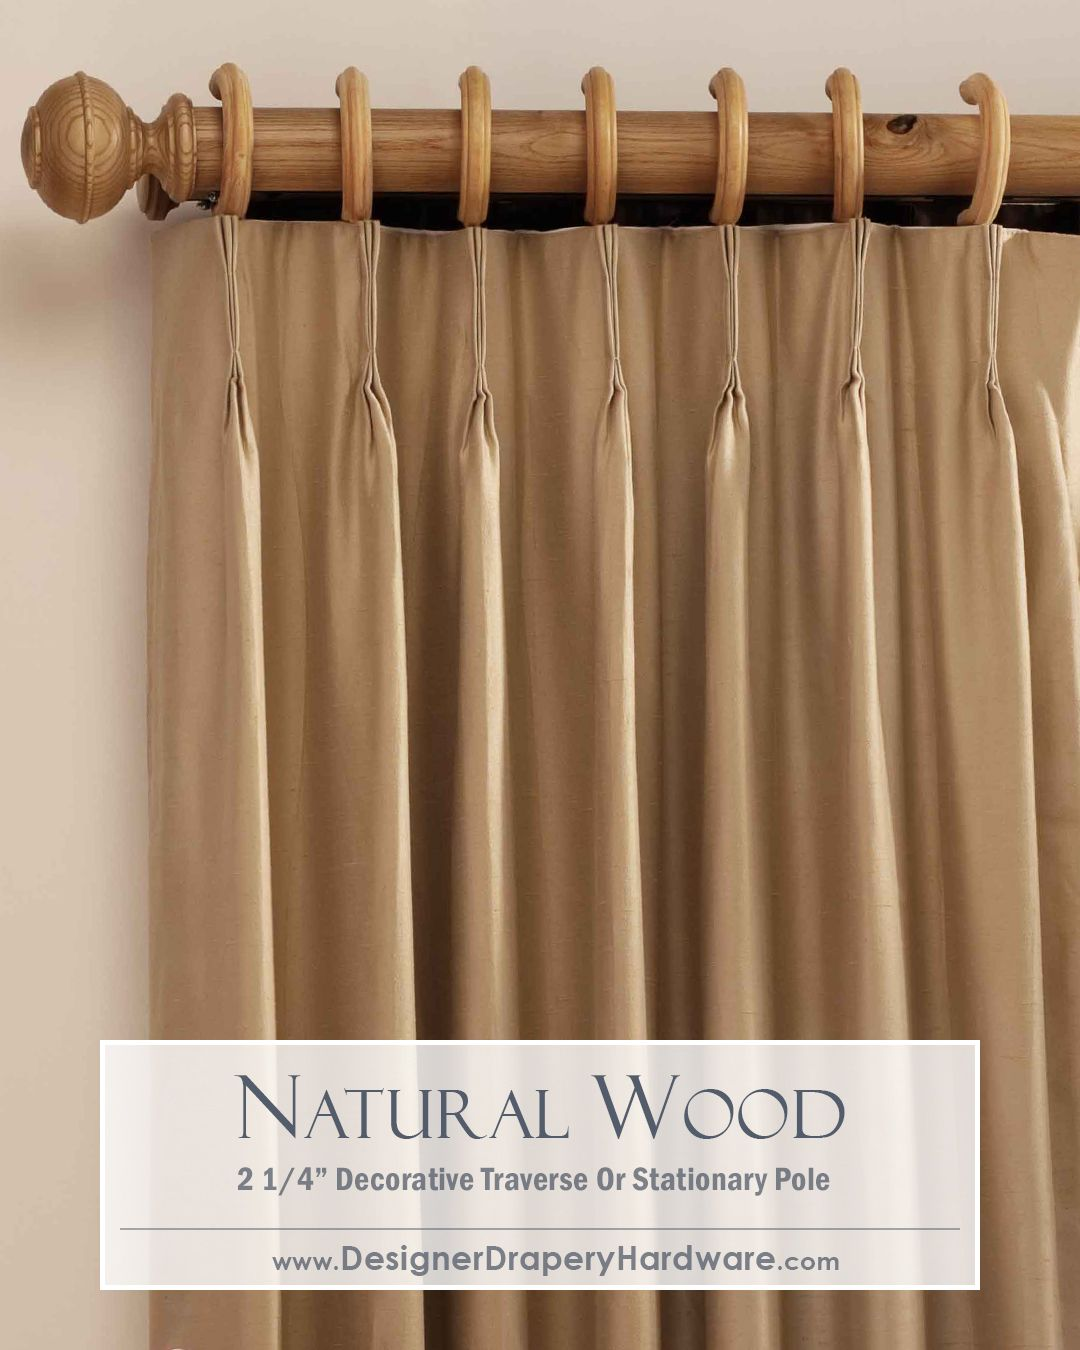 Pin By Designer Drapery Hardware Llc On Lifestyle Images Wooden